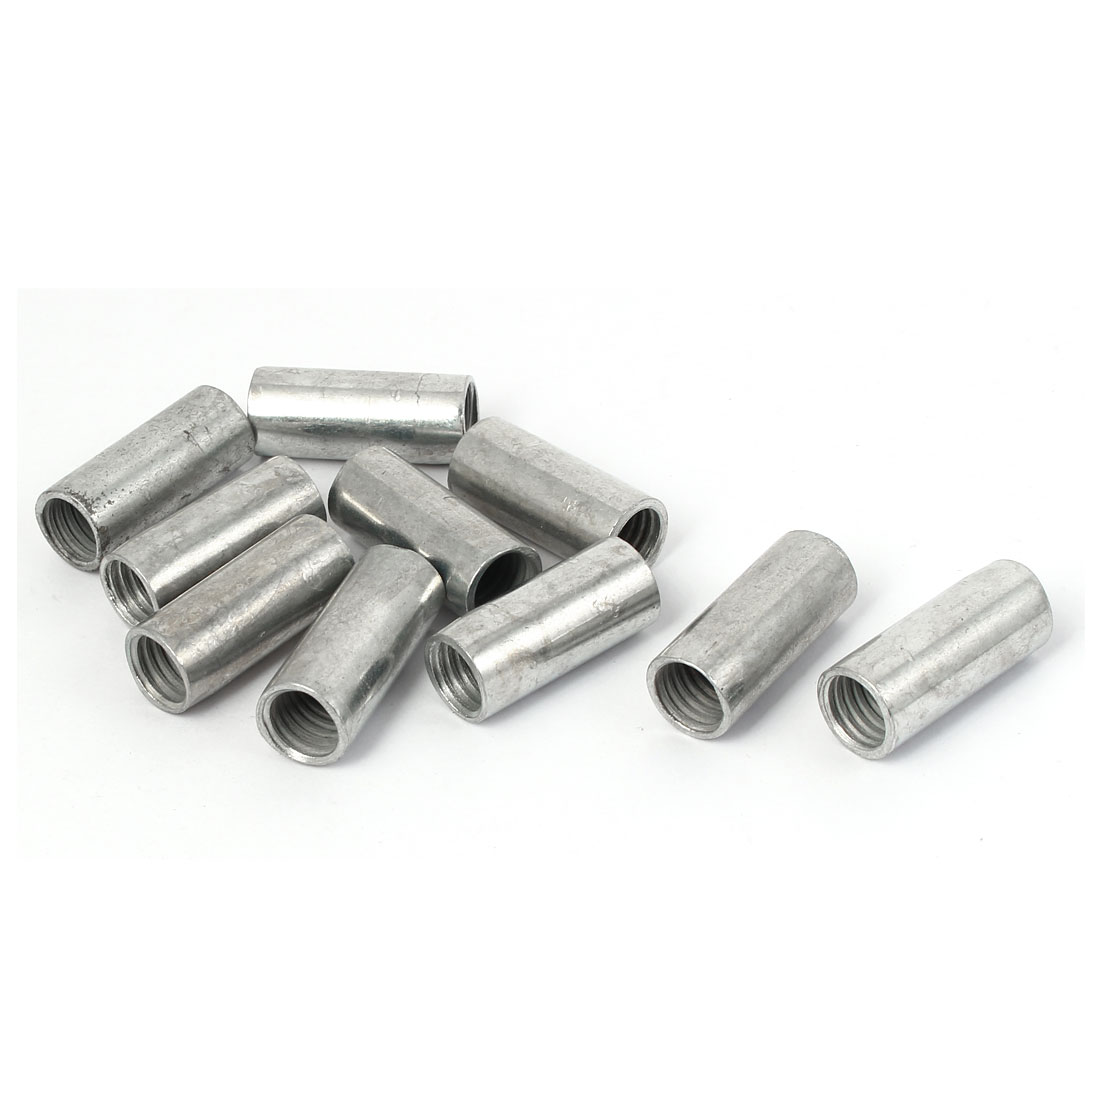 M12 x 14mm x 35mm Round Threaded Rod Coupling Connector Nuts Silver Tone 10 Pcs